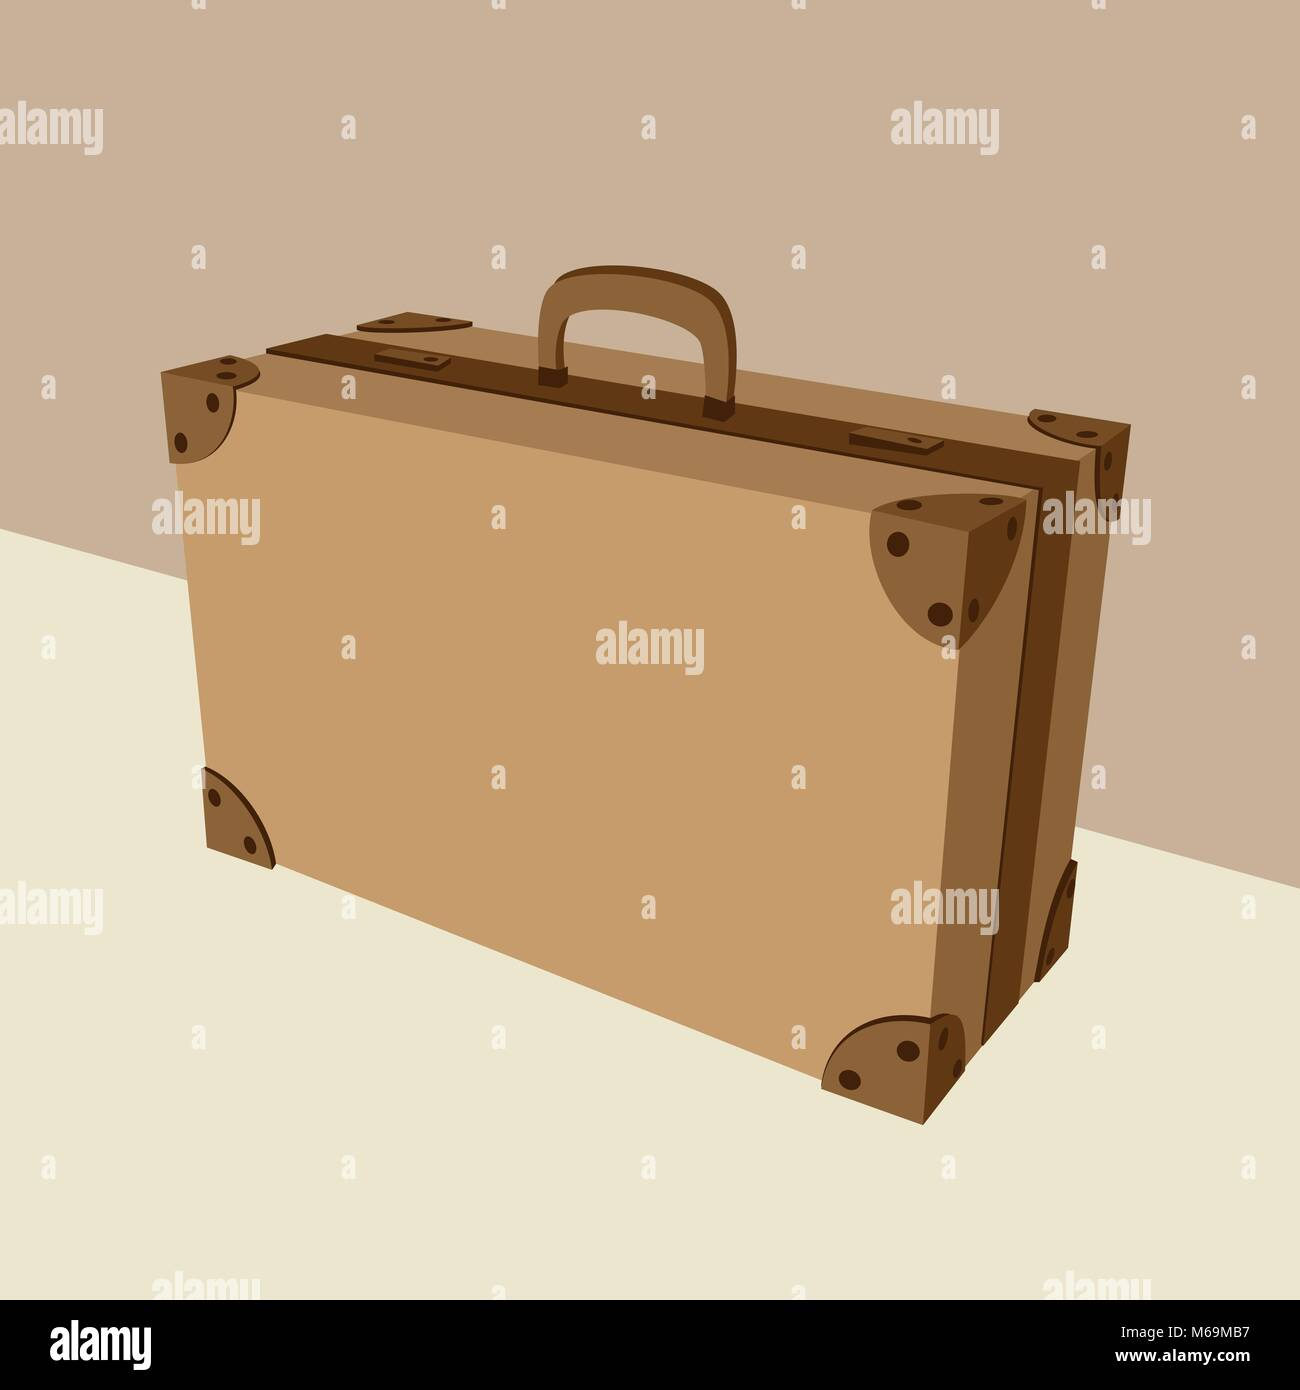 old reliable and robust suitcase - Stock Image